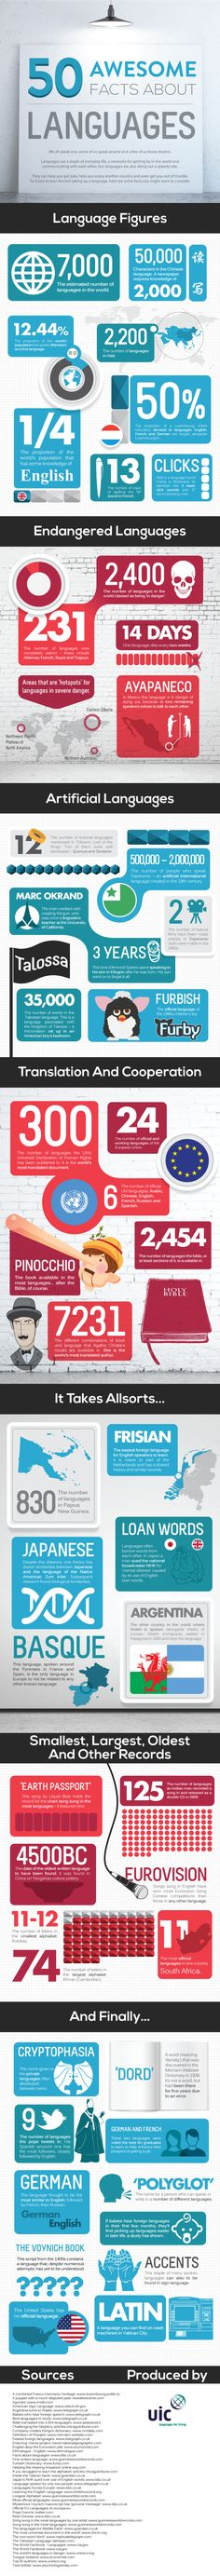 50 Awesome Facts About Languages. I cover language diffusion, isolation, and extinction in my AP Human Geography course. This infographic is outstanding! Even if your subject area does not specifically cover language- it is a central issue developing due to a more connected world. Those who see no economic benefit of their native language will cease to speak it, however, with many tribal languages having no literary tradition, the knowledge and culture of natives is lost with the last speaker.